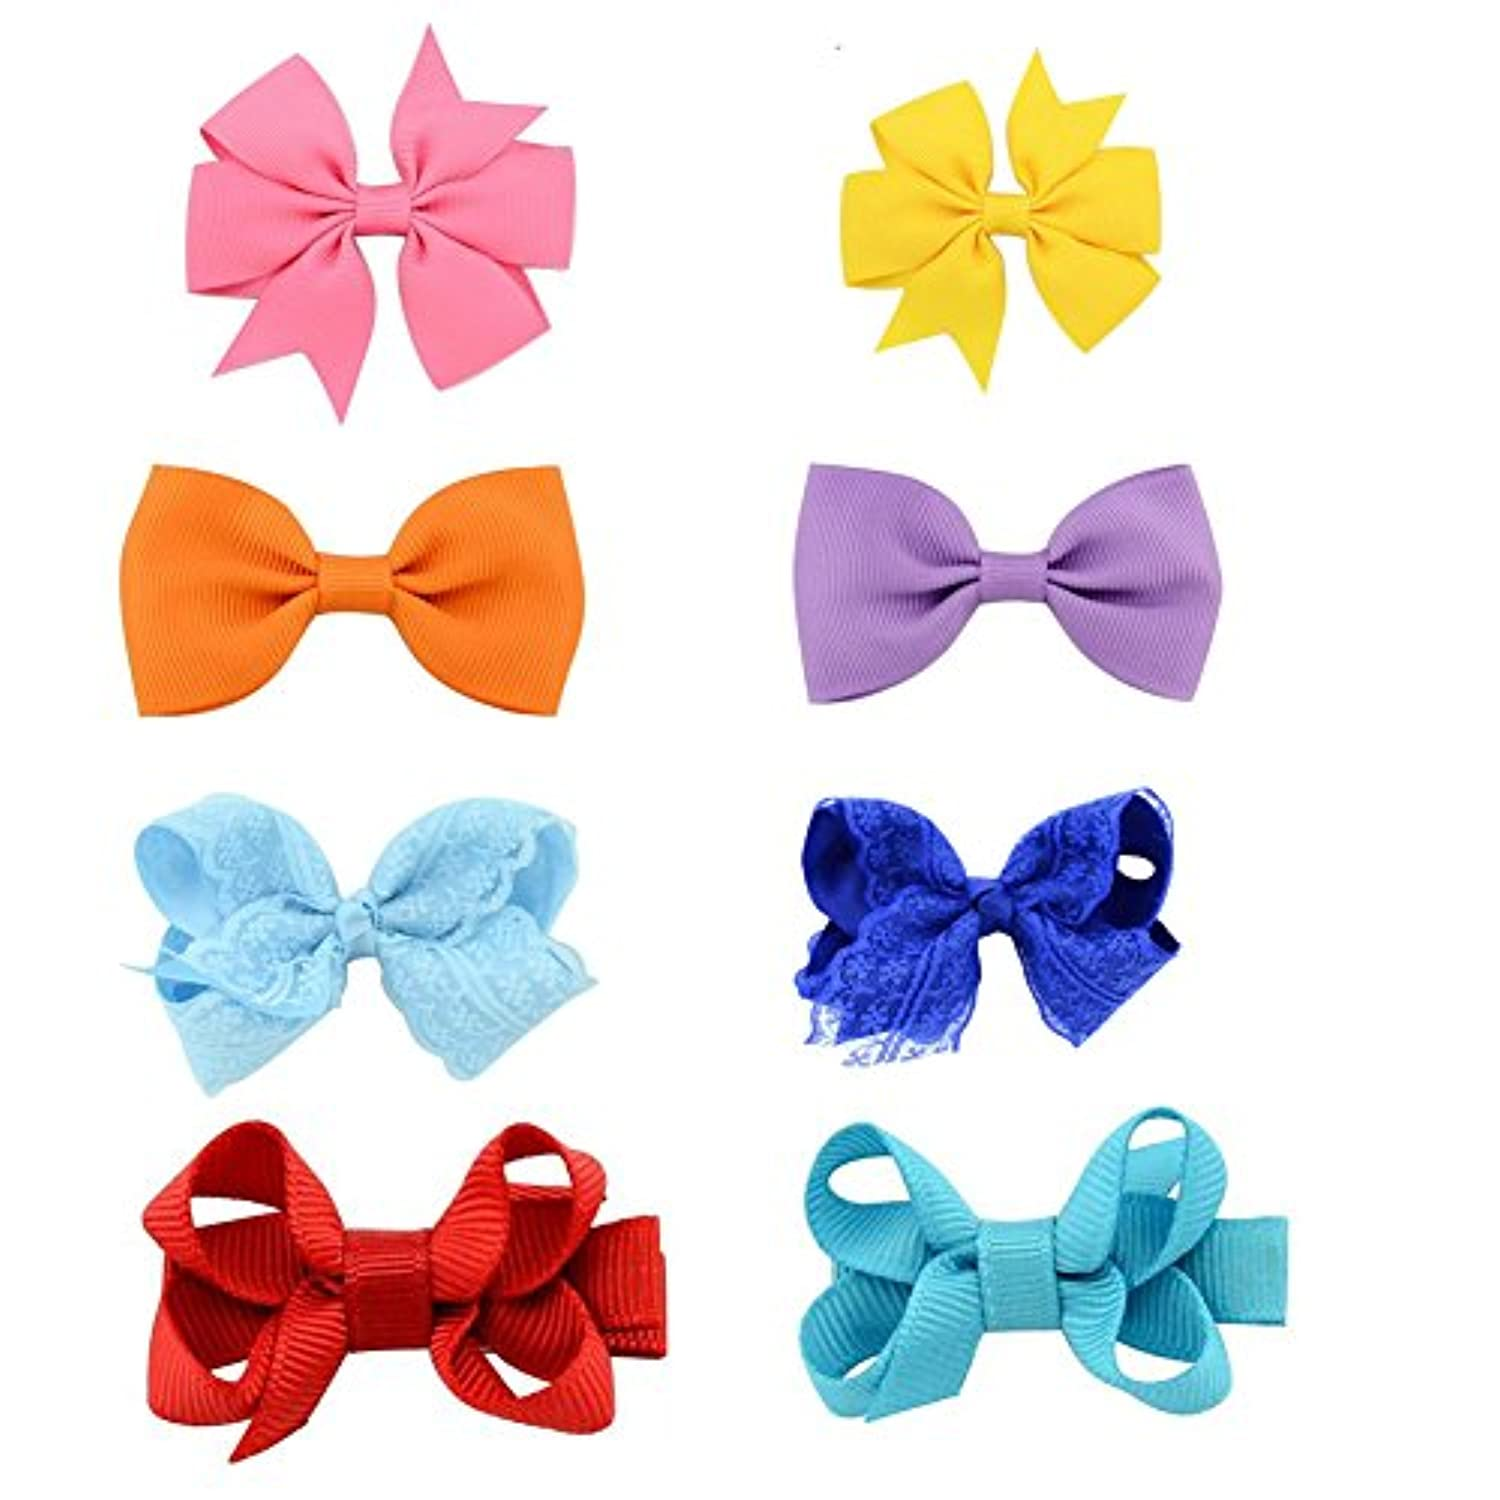 Aschic Baby Girl's Hair Clips Bowknot Anti-slip Clips Head Accessories for Toddler Kid's Knotted Hea ACCESSORY ベビー?ガールズ